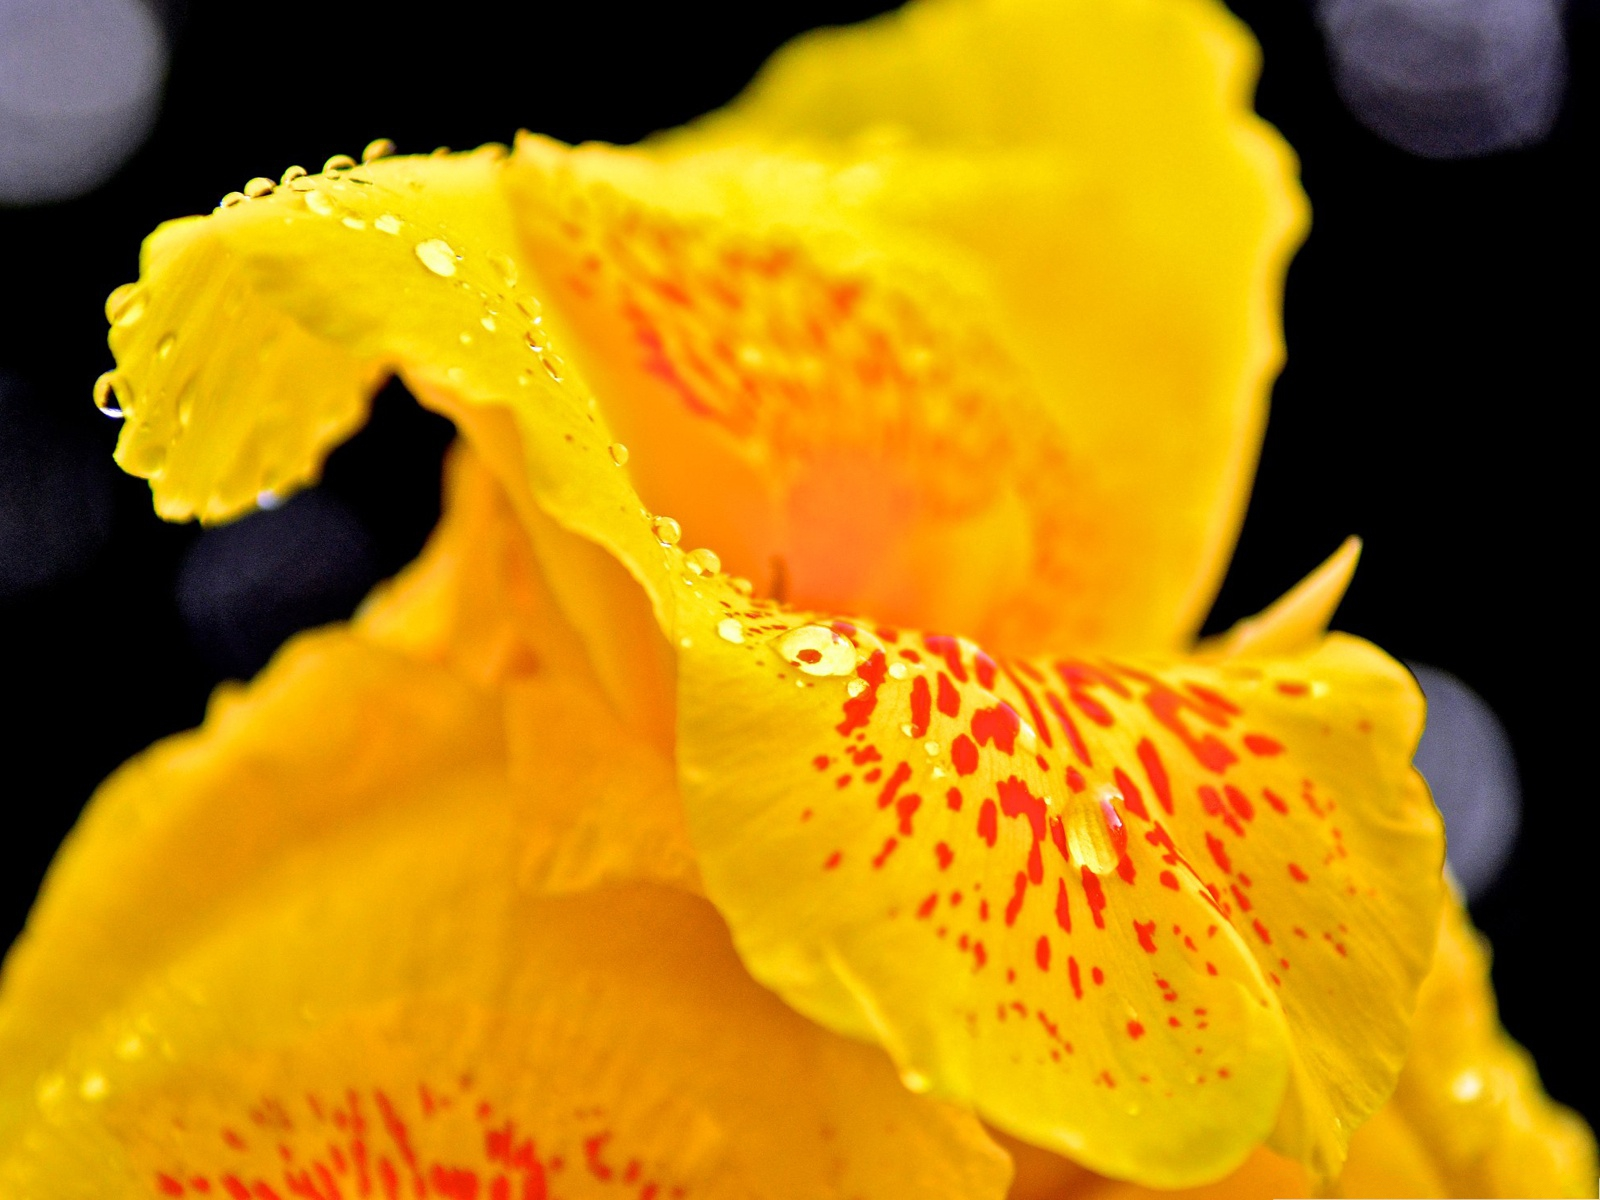 click to free download the wallpaper--Yellow Flowers Image, Blooming Flower with Rain Drops, Decent and Prosperous Scene 1600X1200 free wallpaper download